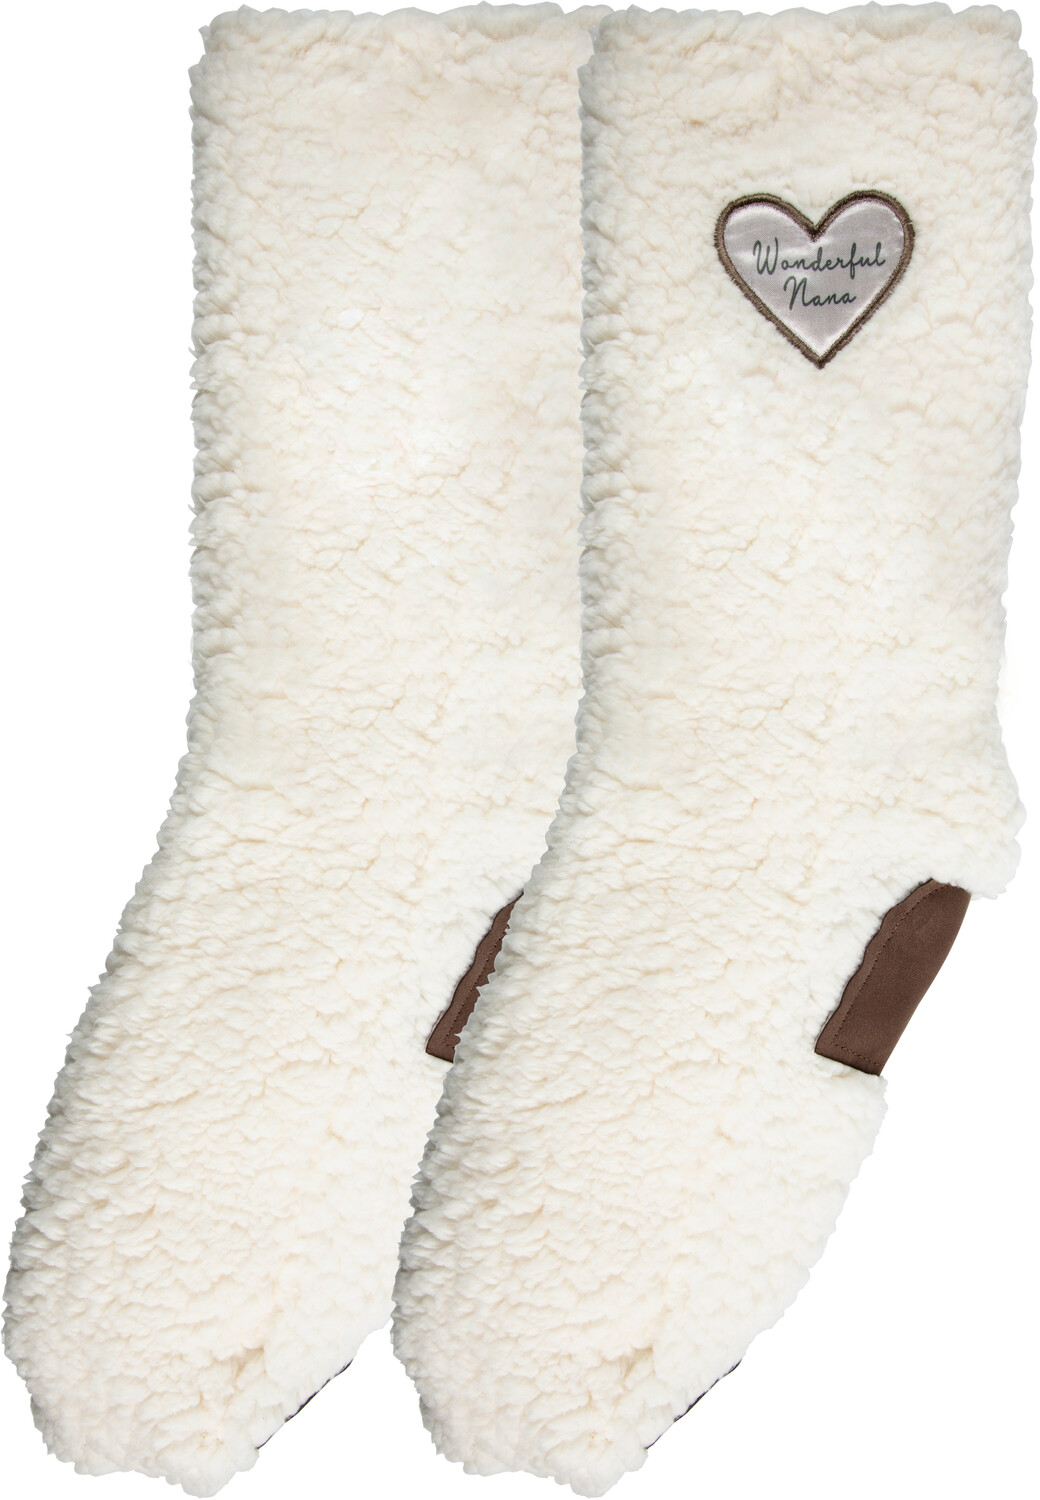 Wonderful Nana by Comfort Collection - Wonderful Nana - One Size Fits Most Sherpa Slipper